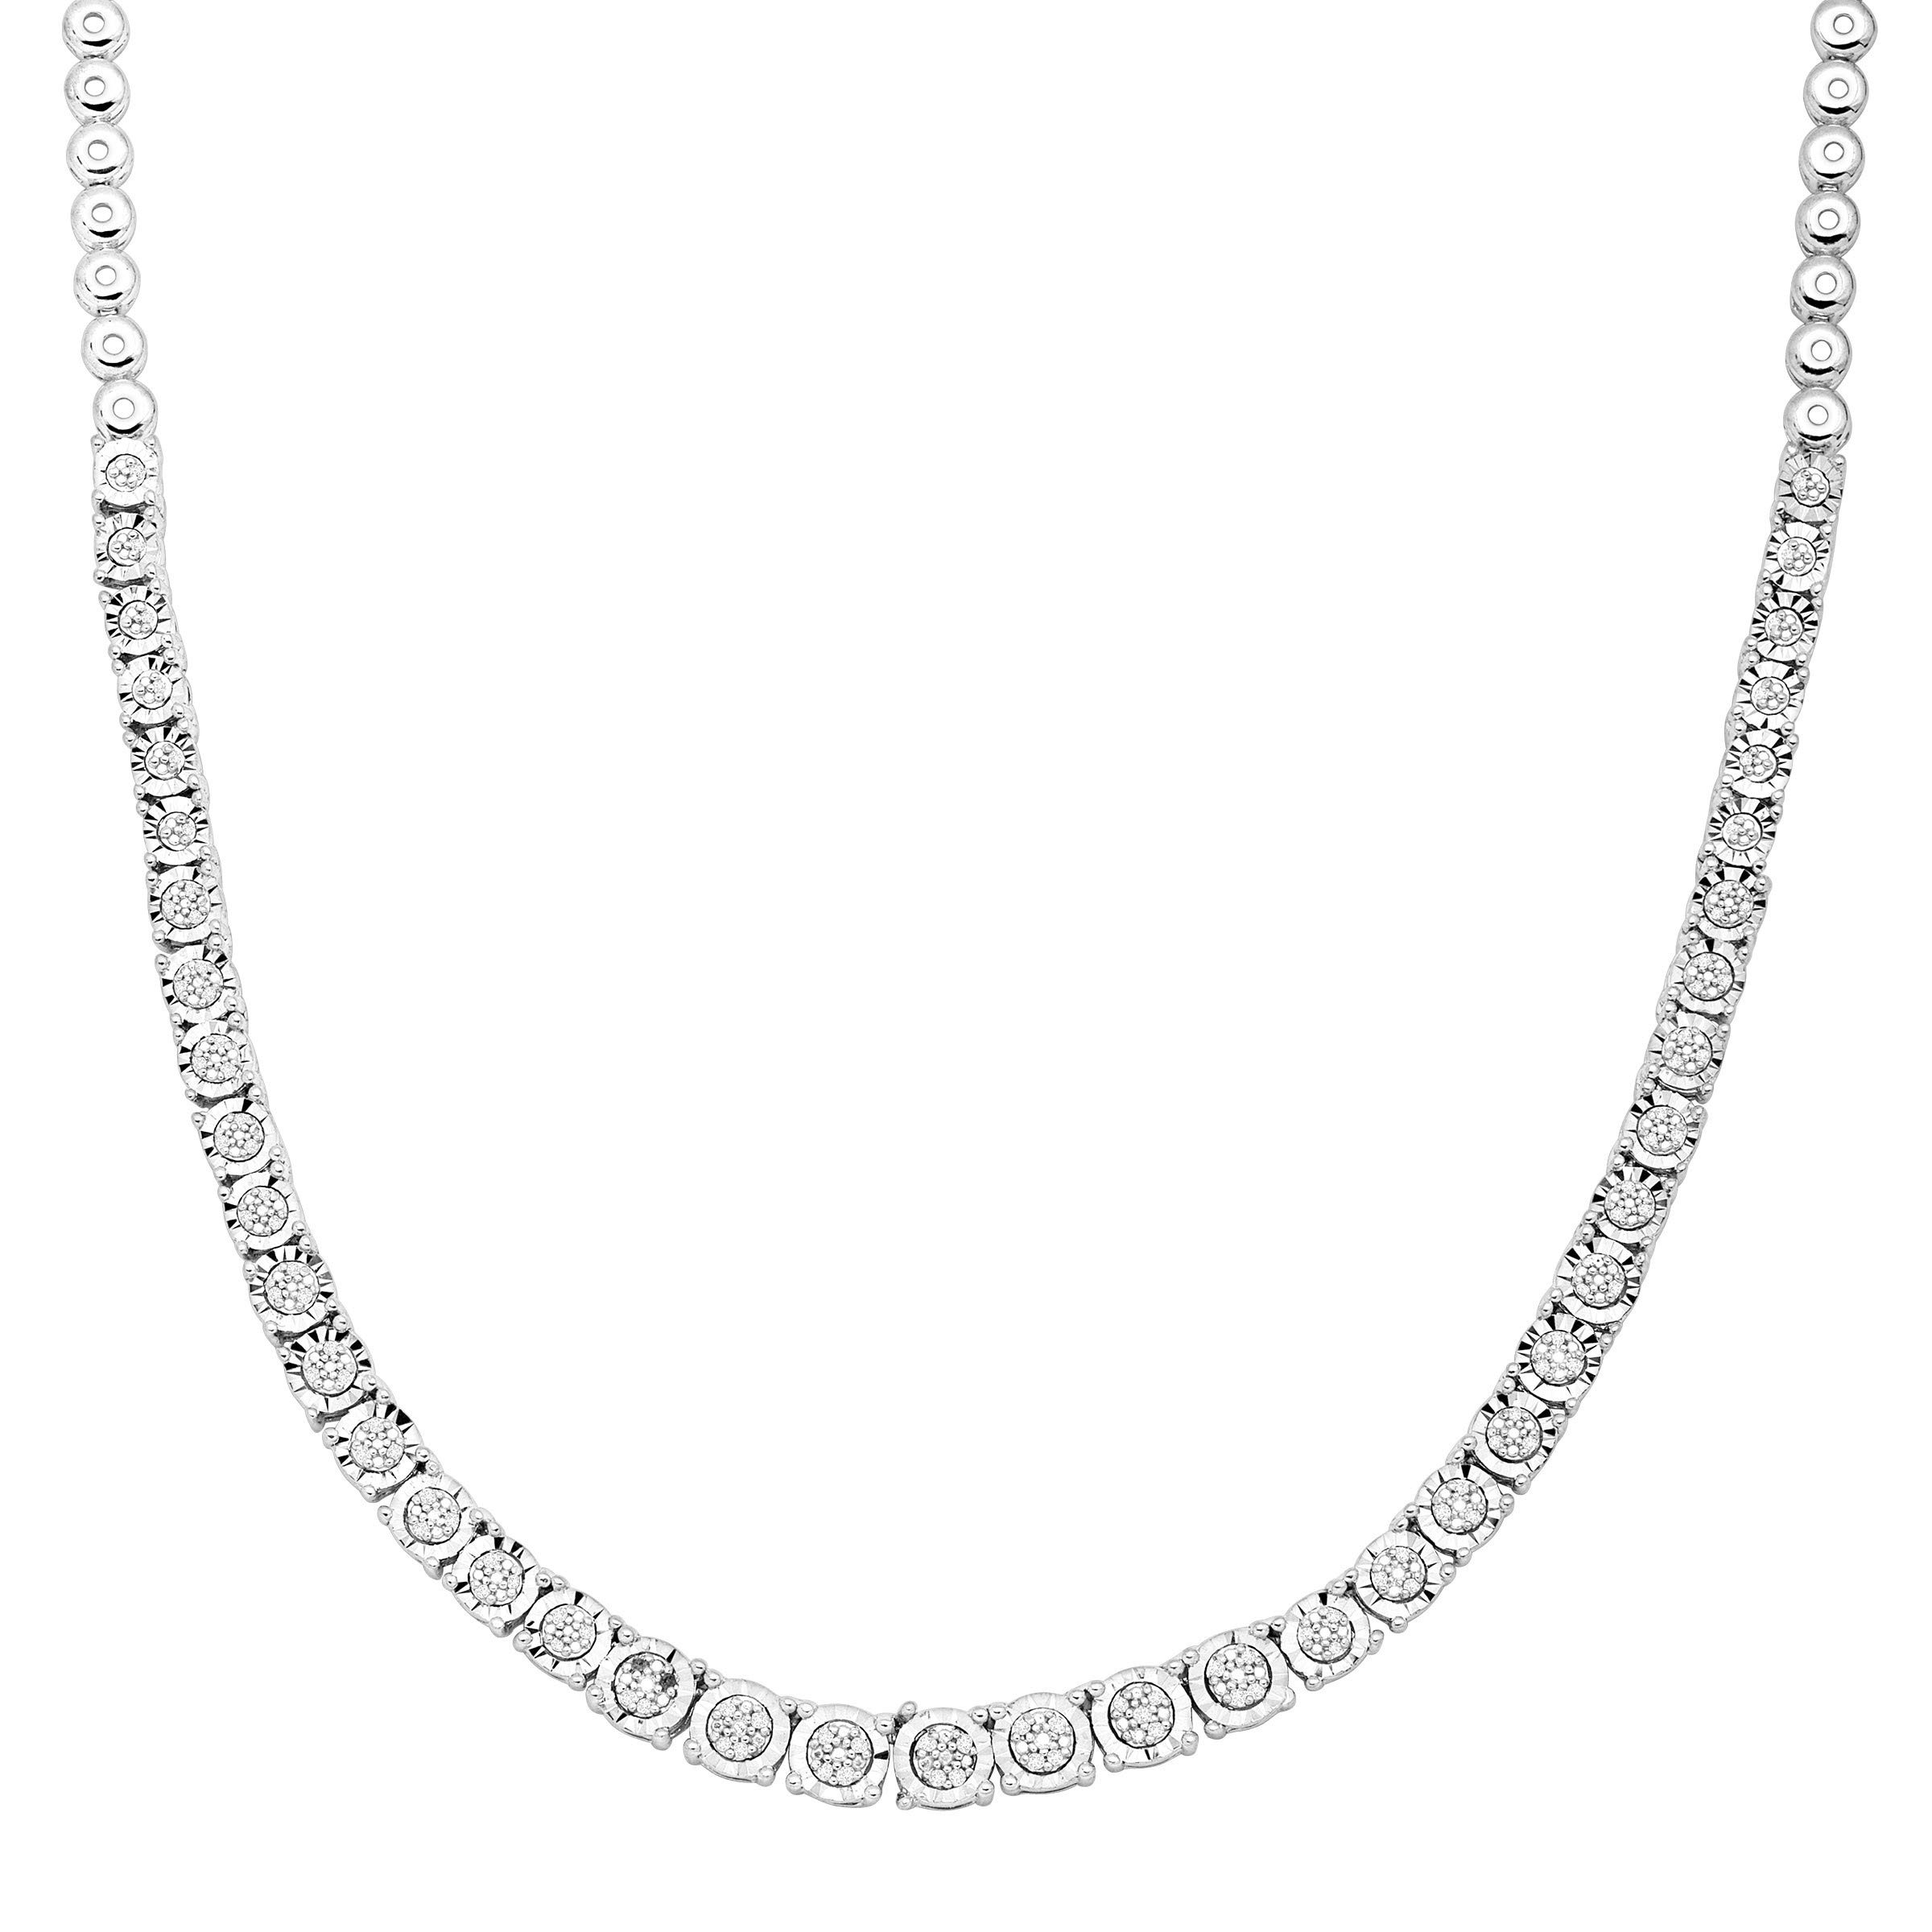 1/3 ct Diamond Tennis Necklace in Sterling Silver